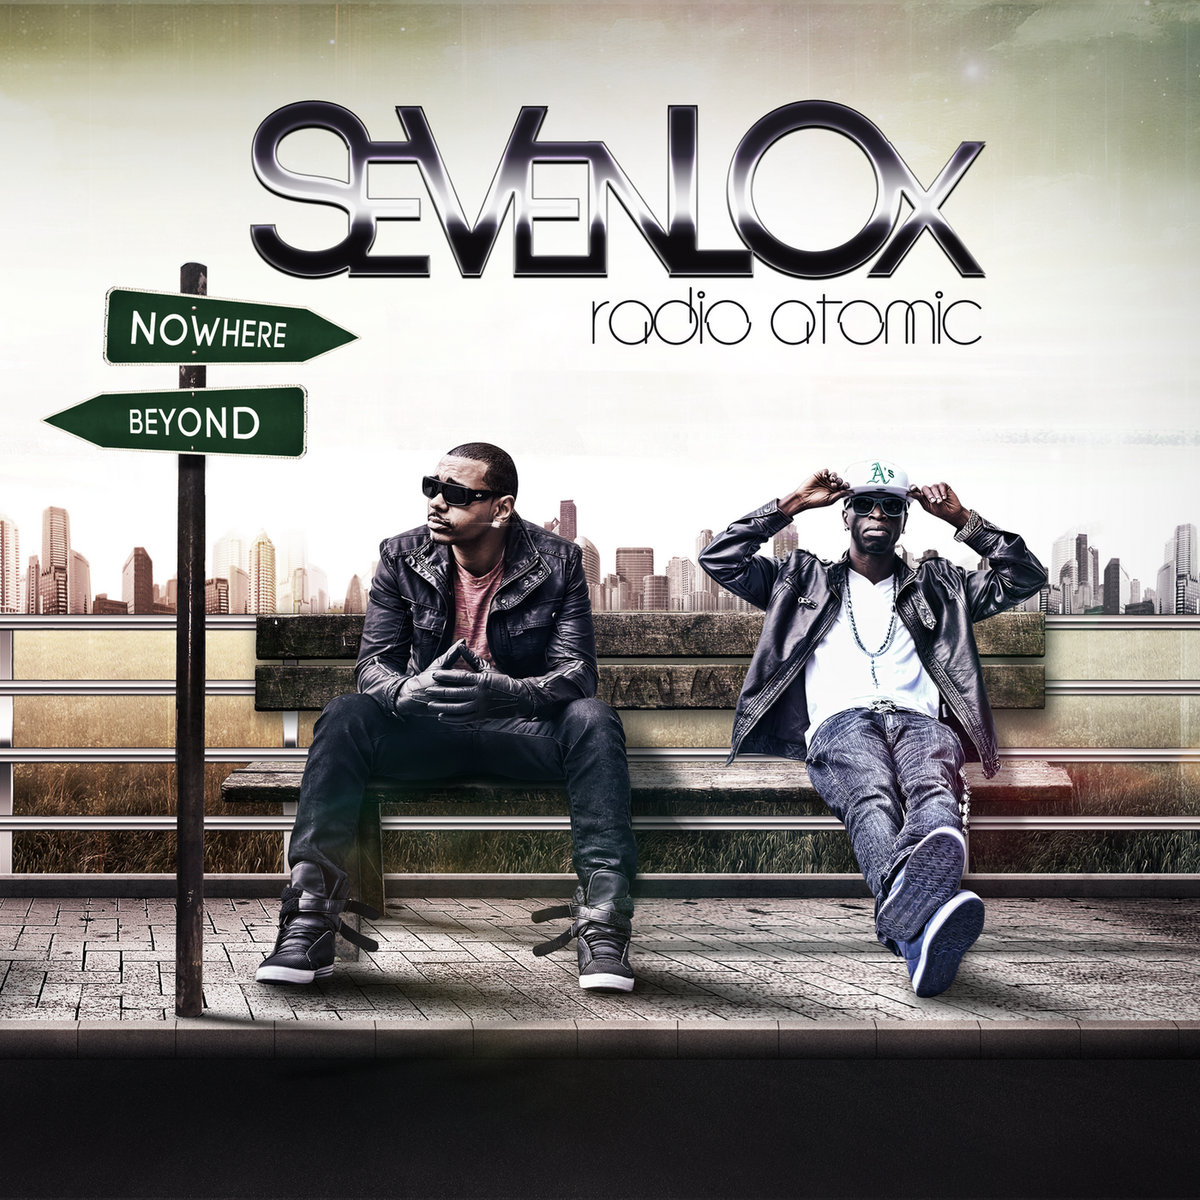 sevenlox just call me